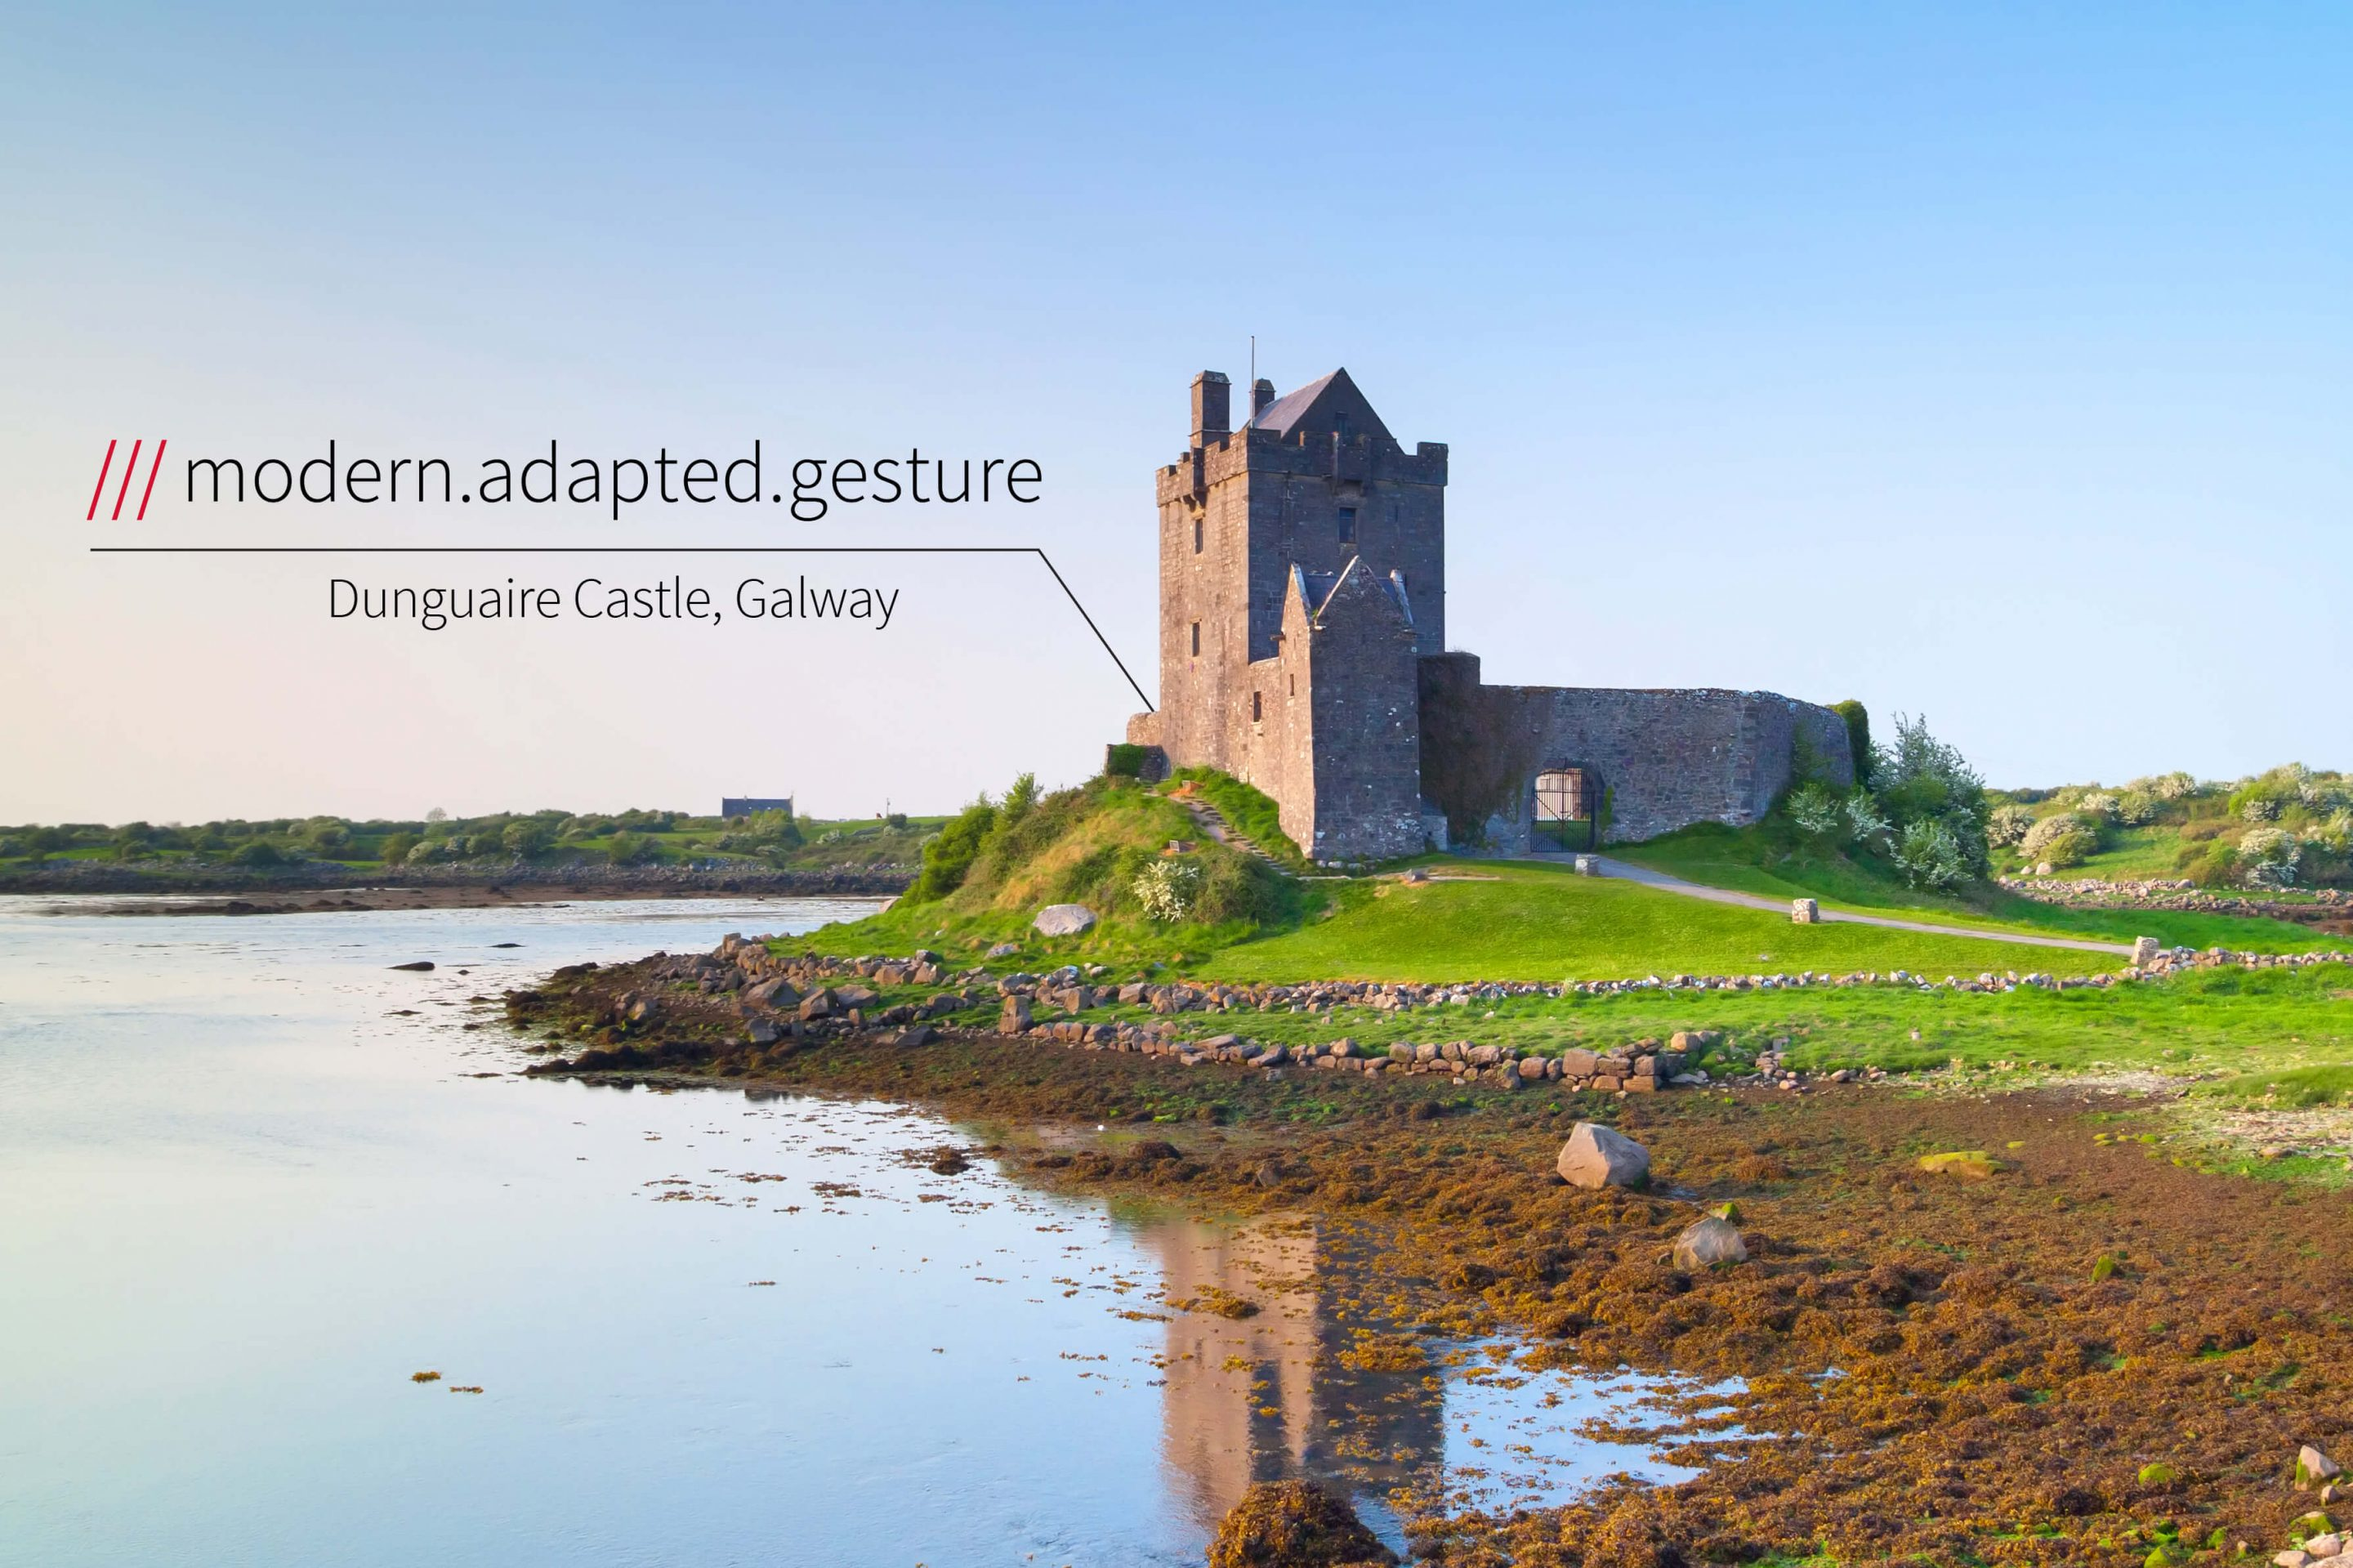 historic castle on edge on beach at 3 words location modern.adapted.gesture